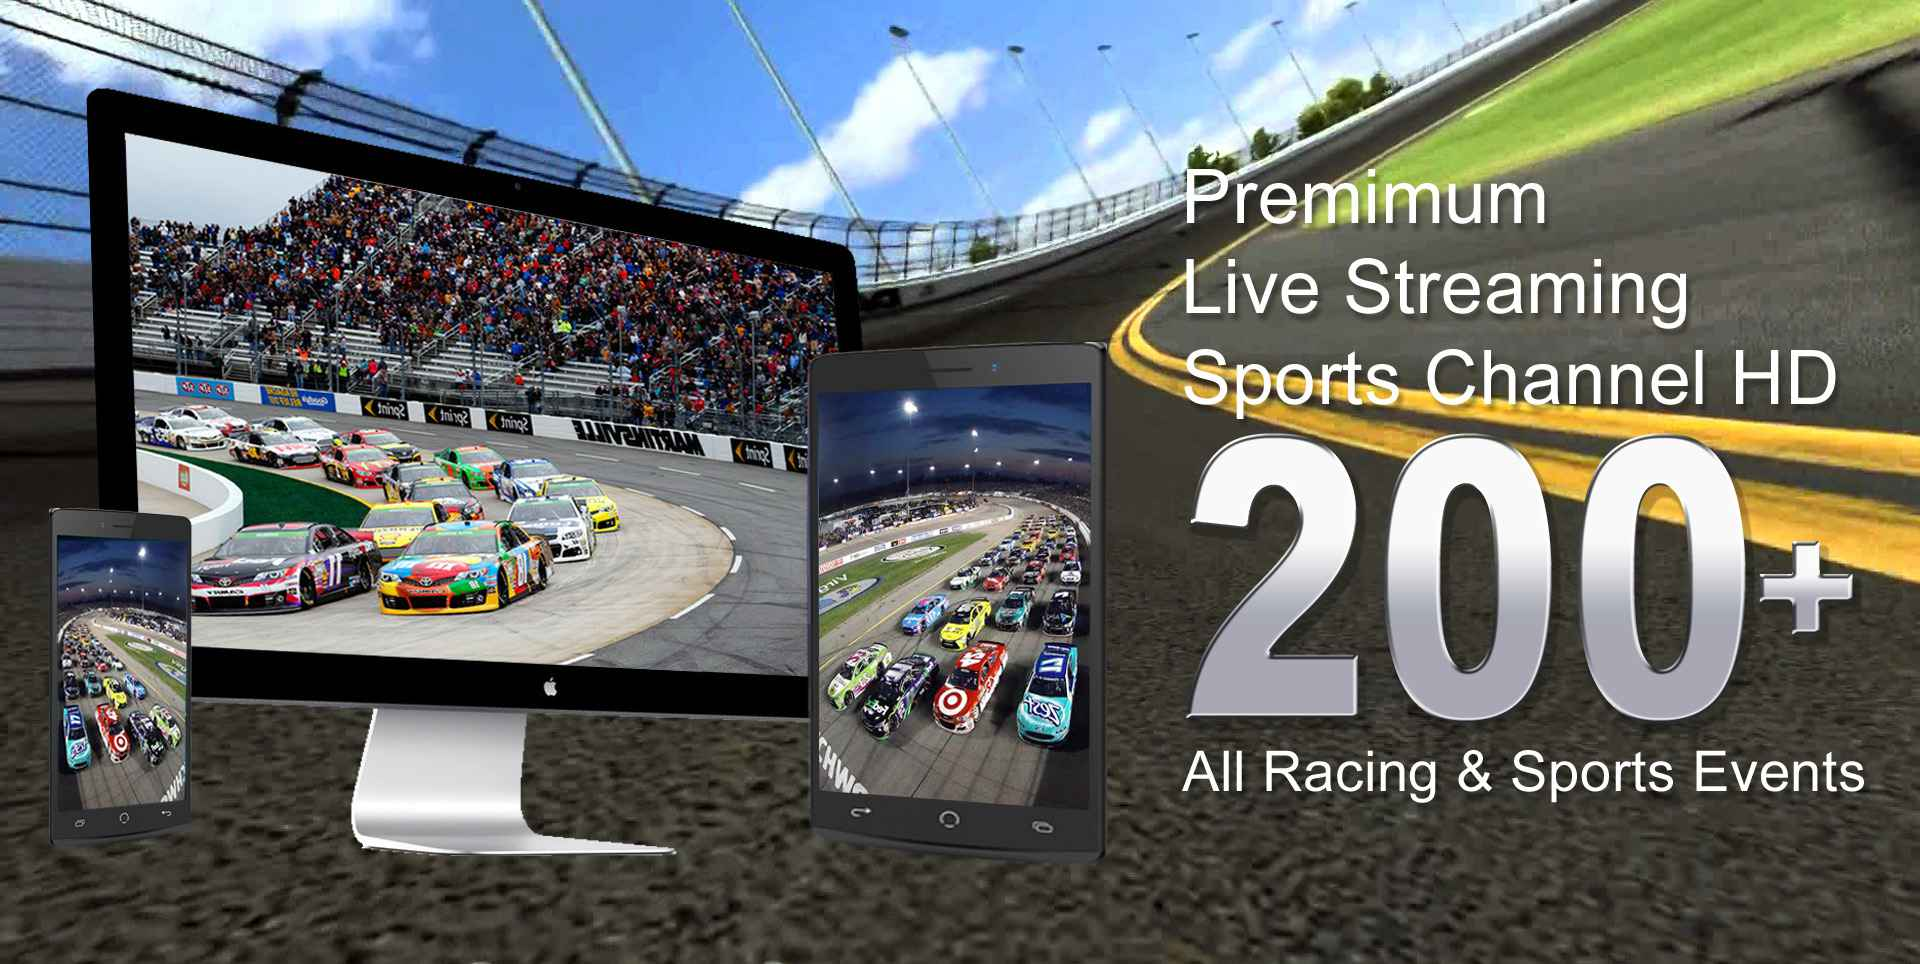 axalta%20we%20paint%20winners%20400%201 2015 Axalta We Paint Winners 400 live streaming